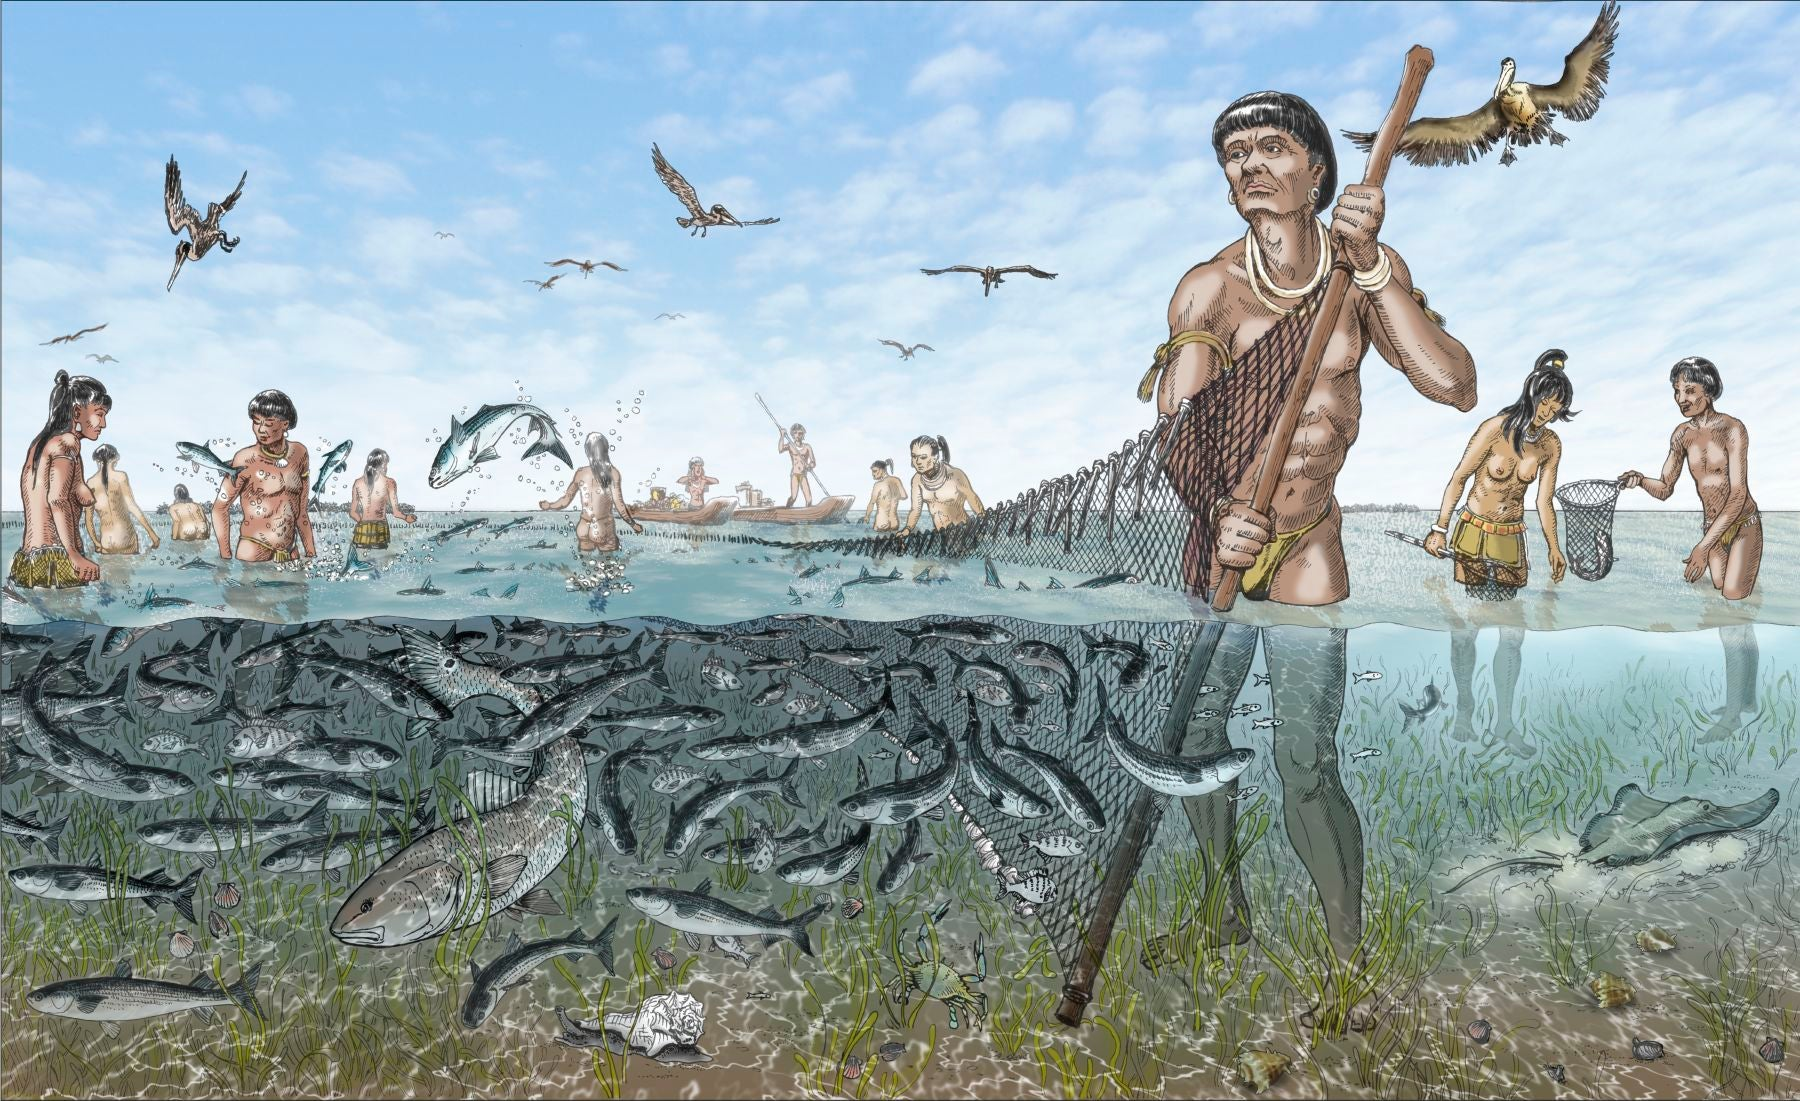 Florida's Ancient Calusa Kingdom Was Powered By Ingenious Fish Corrals